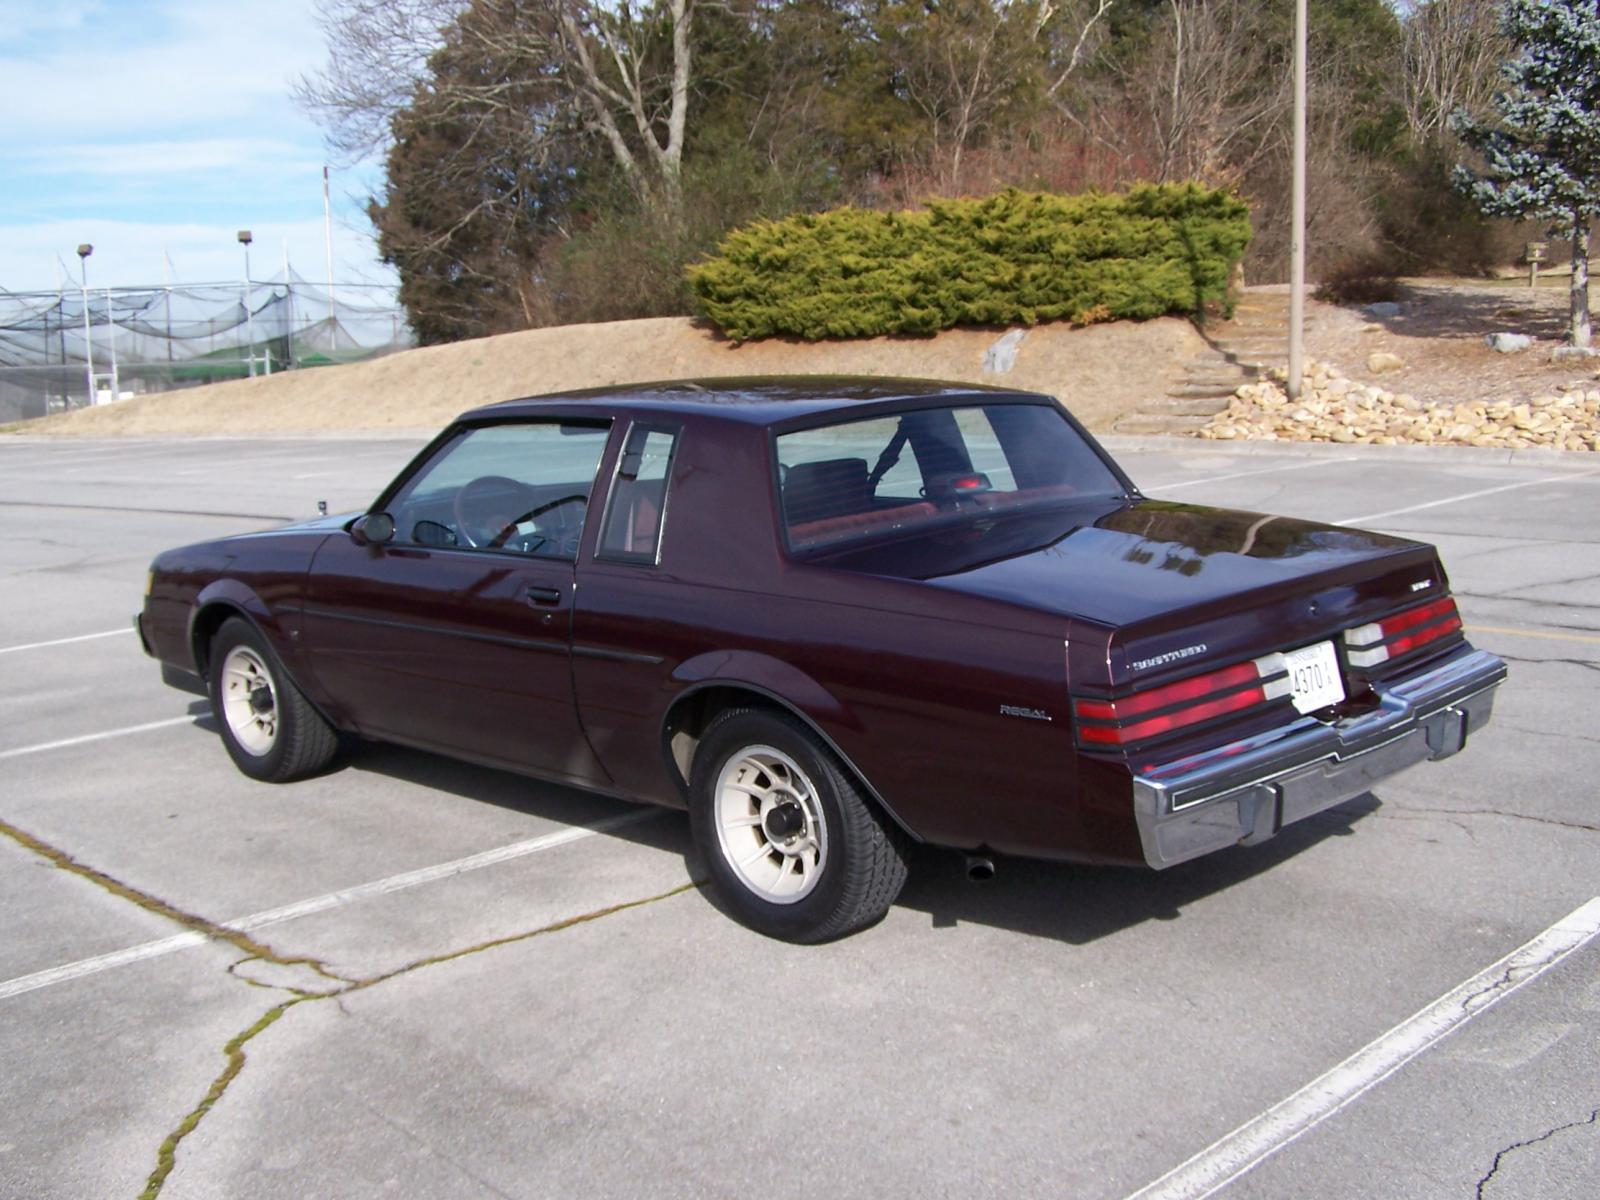 ... 1987-buick-regal-turbo-t-original-one-owner- ...